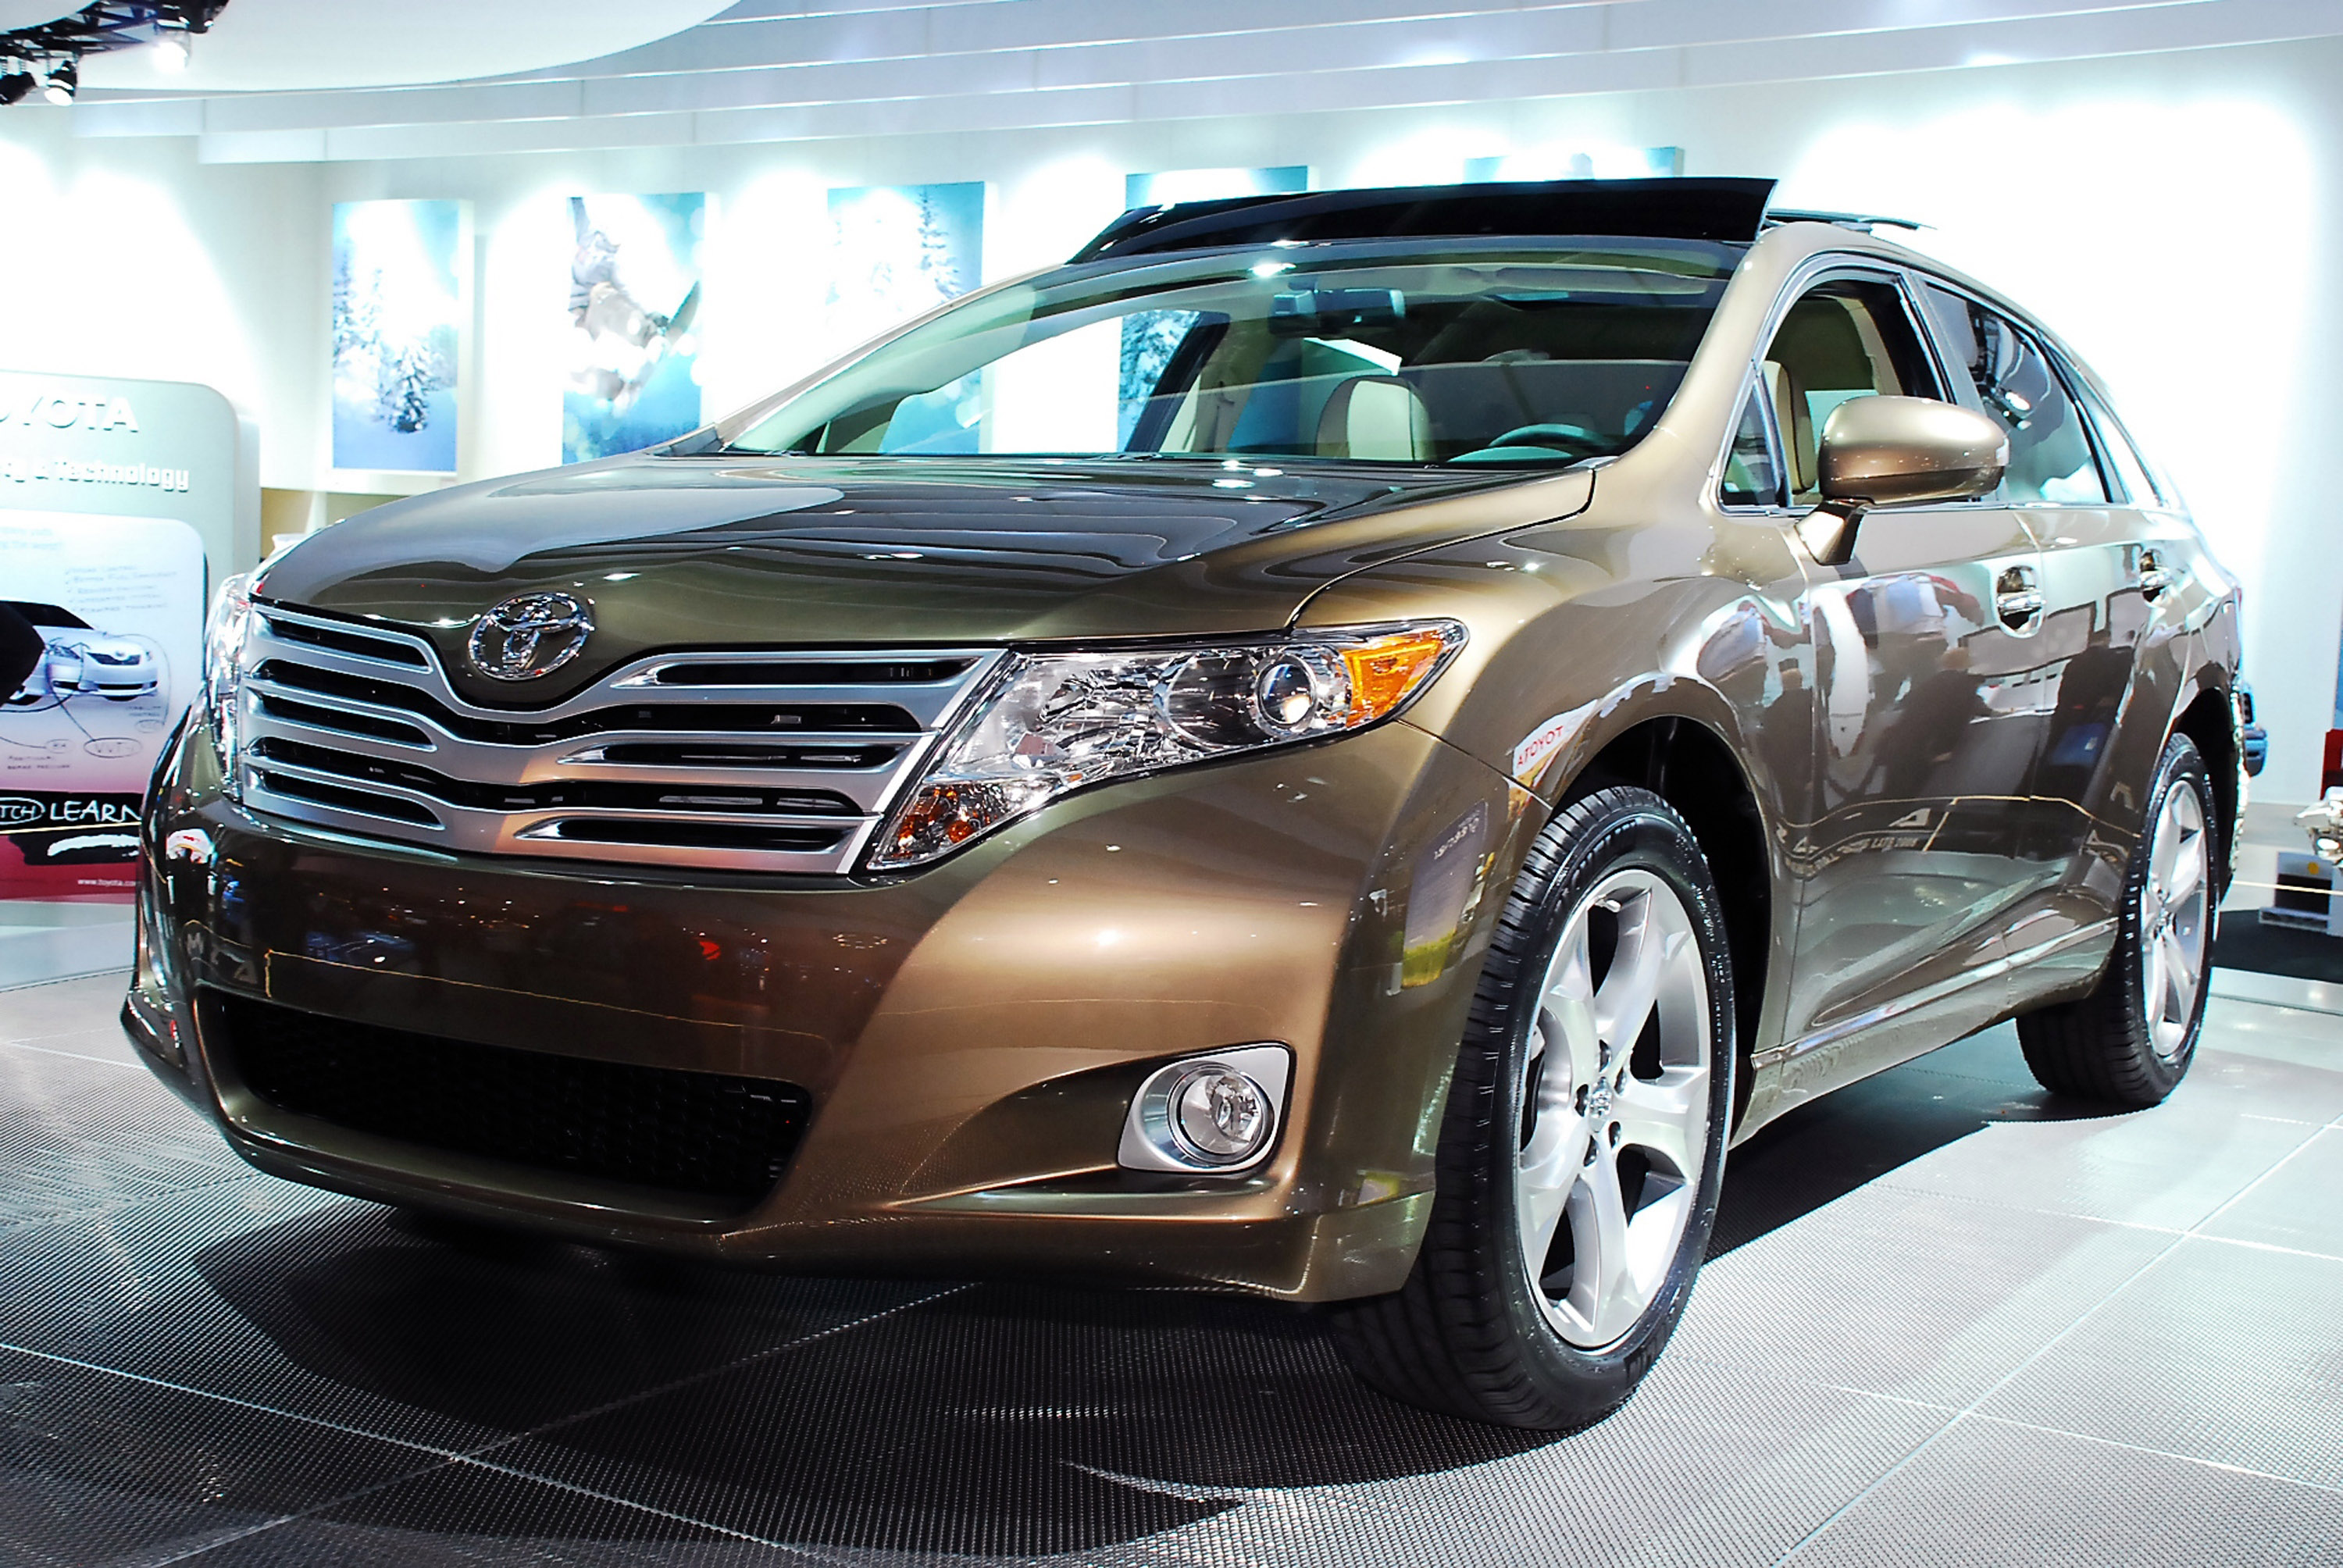 california review cruising our red venza of car beach the ride toyota front in at sweet coast on